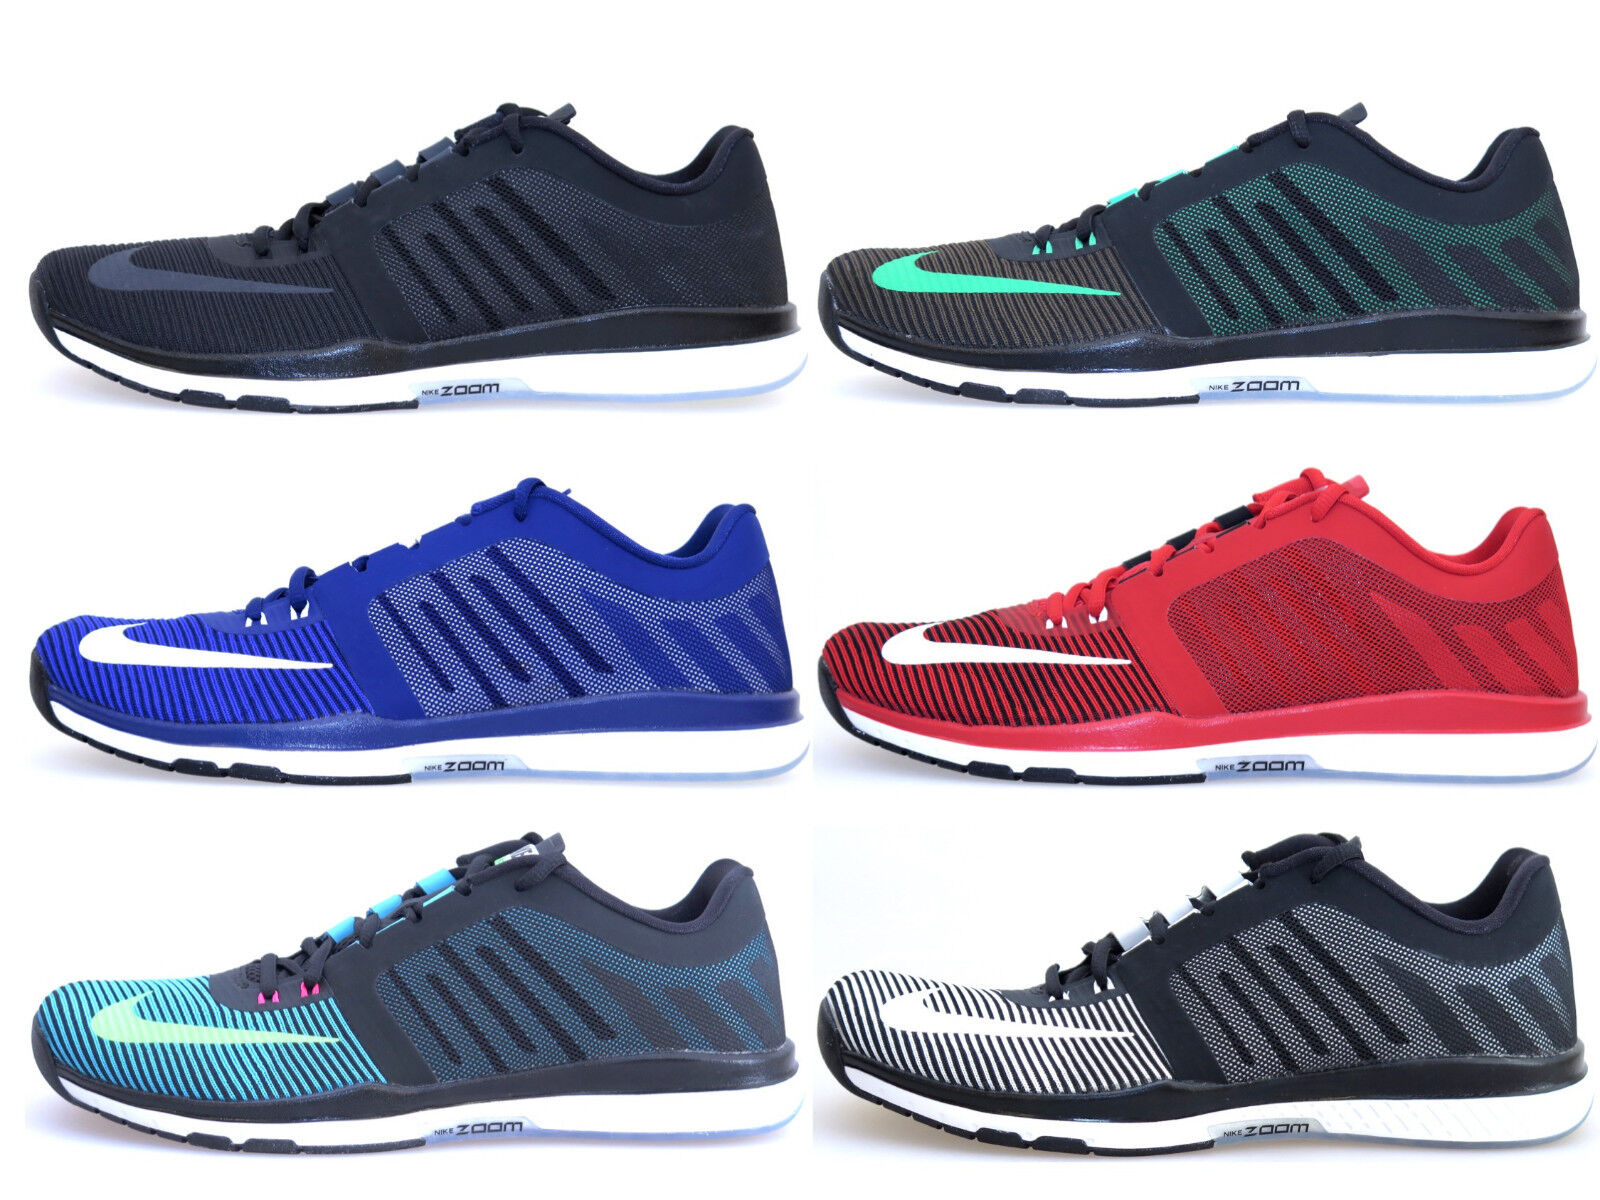 Nike  Zoom Speed tr3 Trainer 3 Sizes 40, 41, 42, 43, 44, 45, 46, 47 - 804401  quick answers